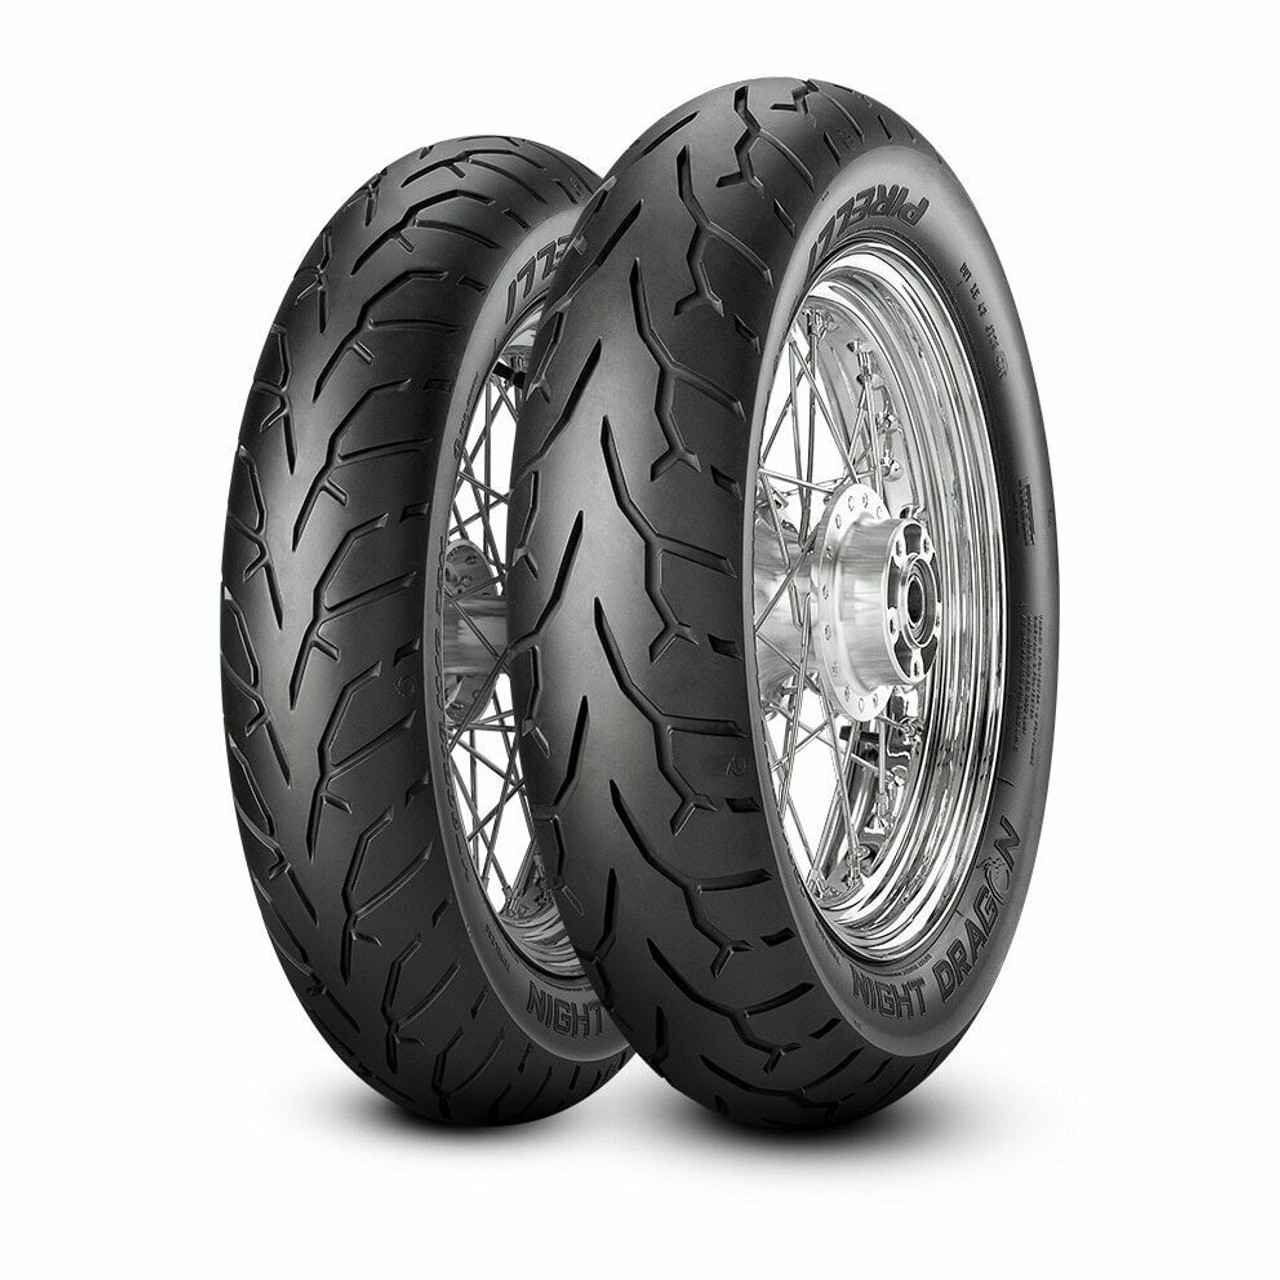 180/65-16 Pirelli Night Dragon